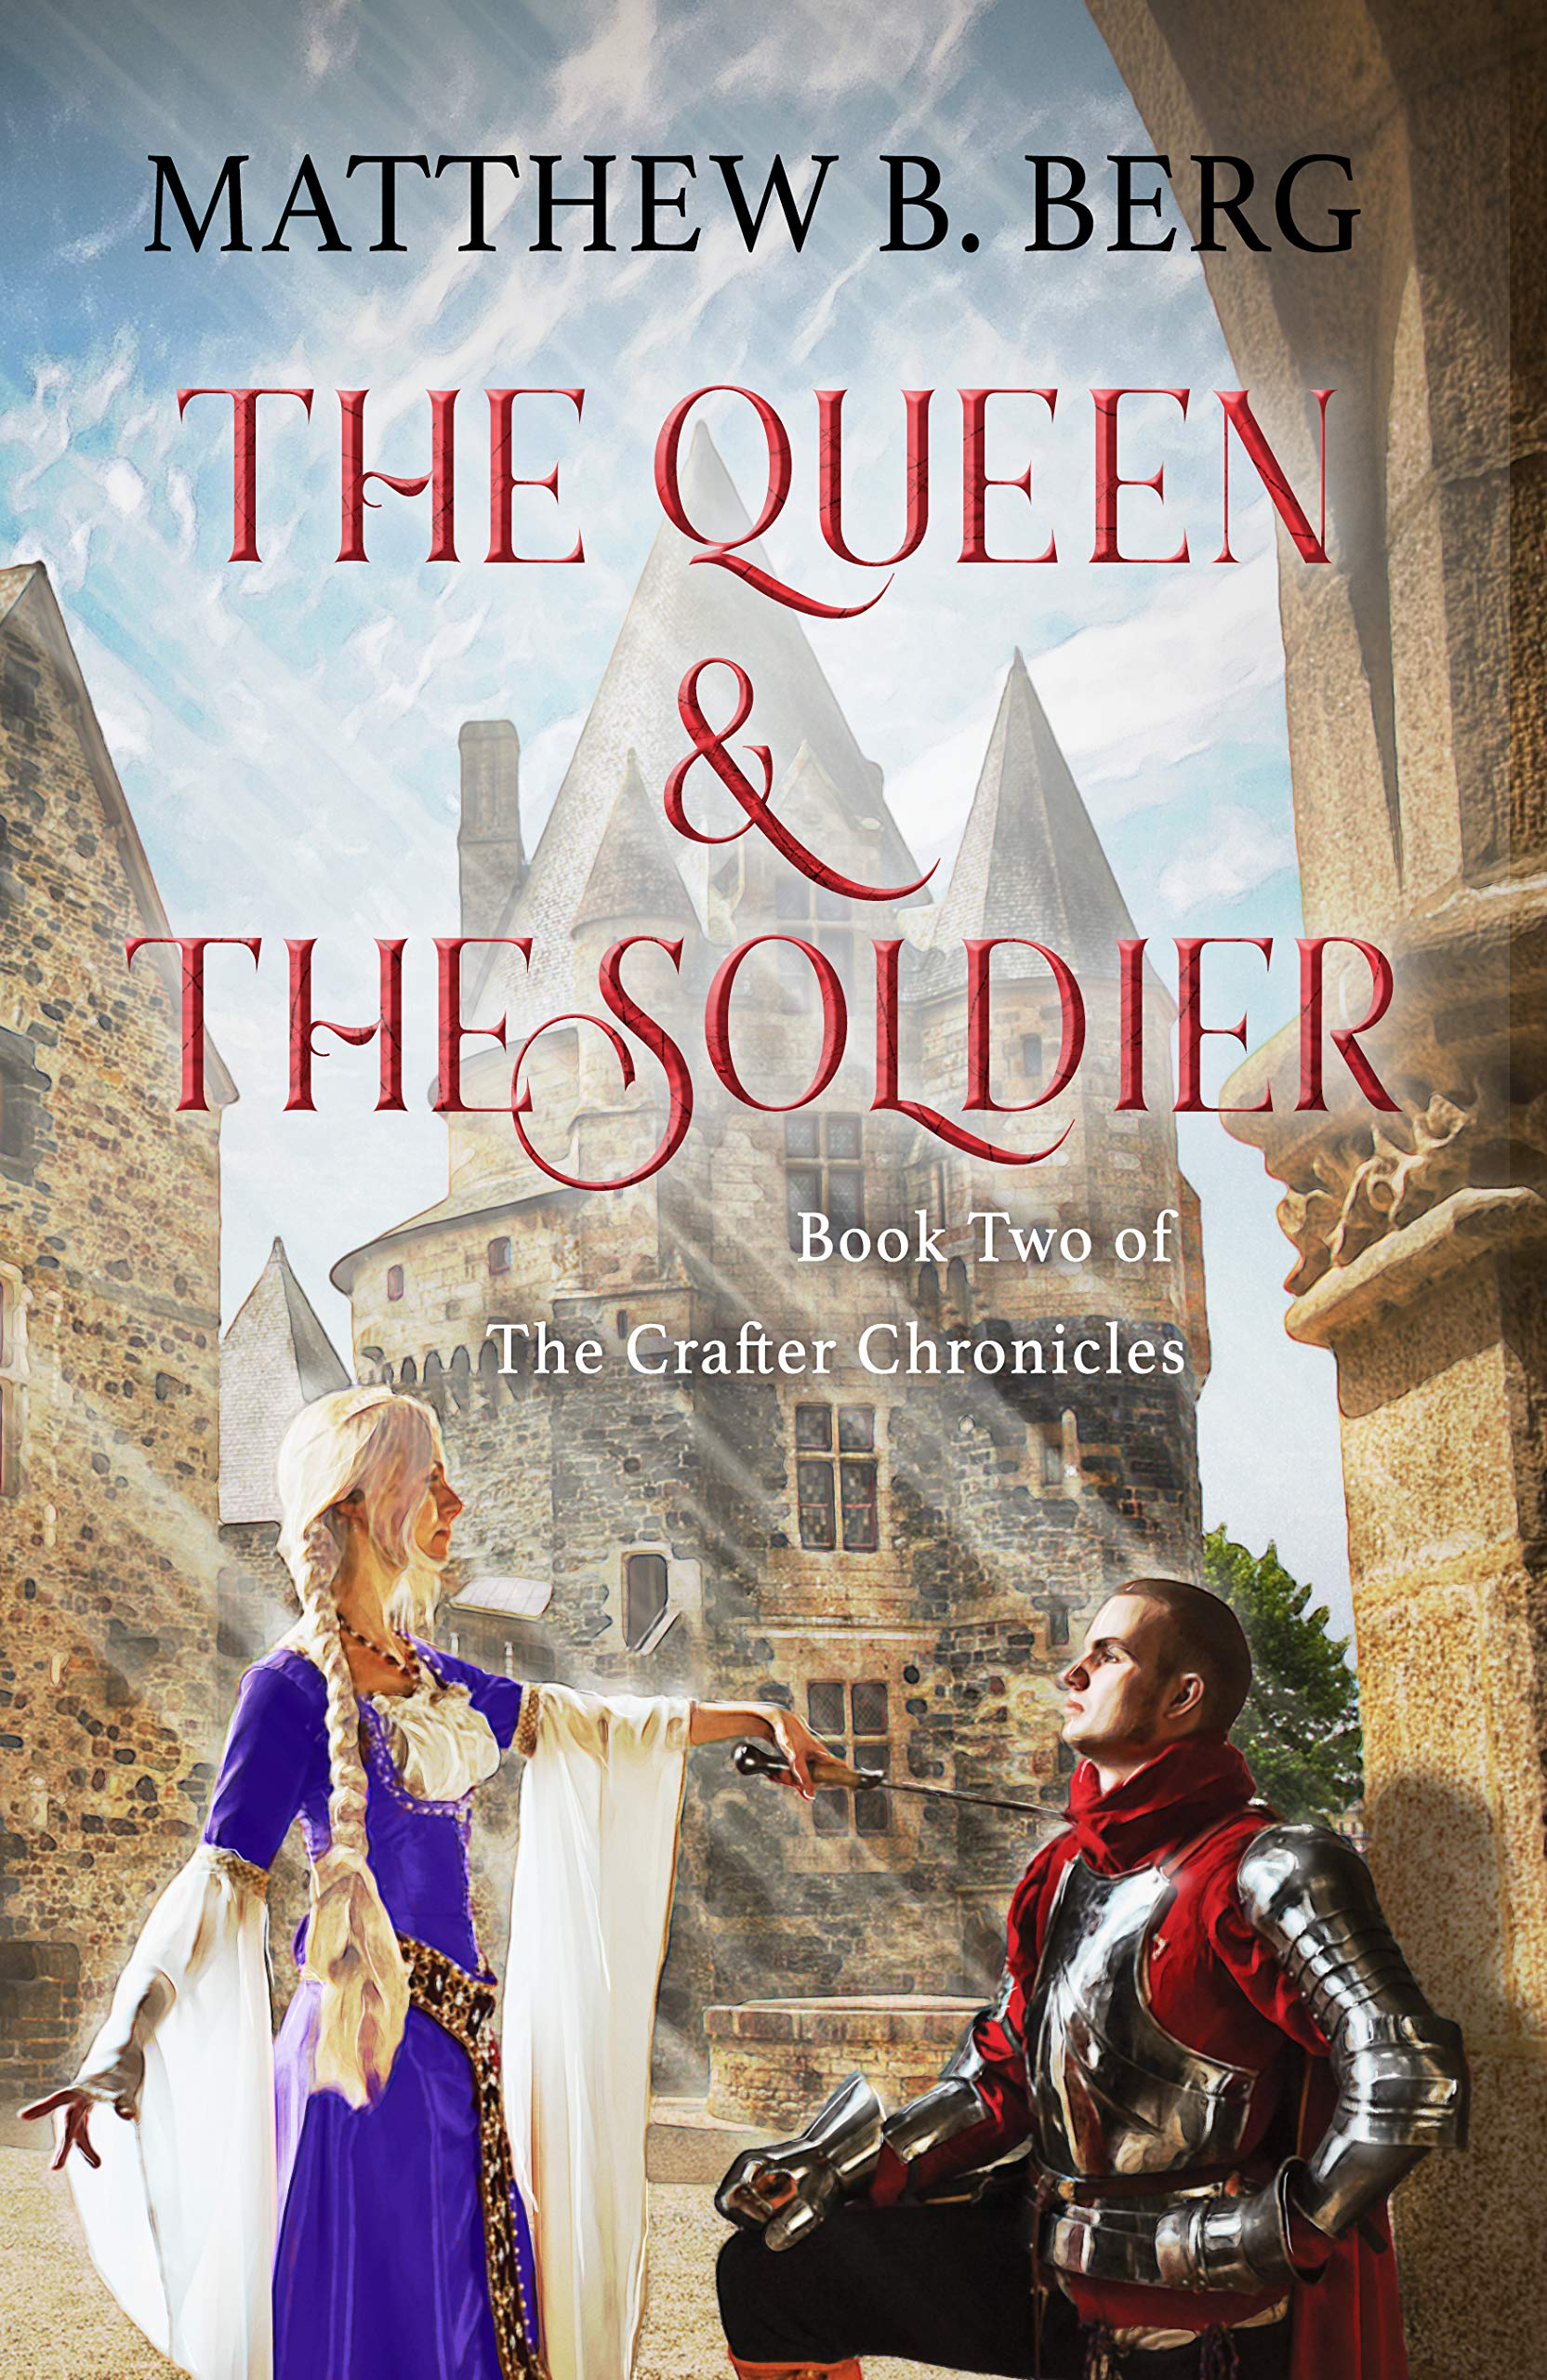 The Queen & The Soldier: Book Two of the Exciting New Coming of Age Epic Fantasy Series, The Crafter Chronicles